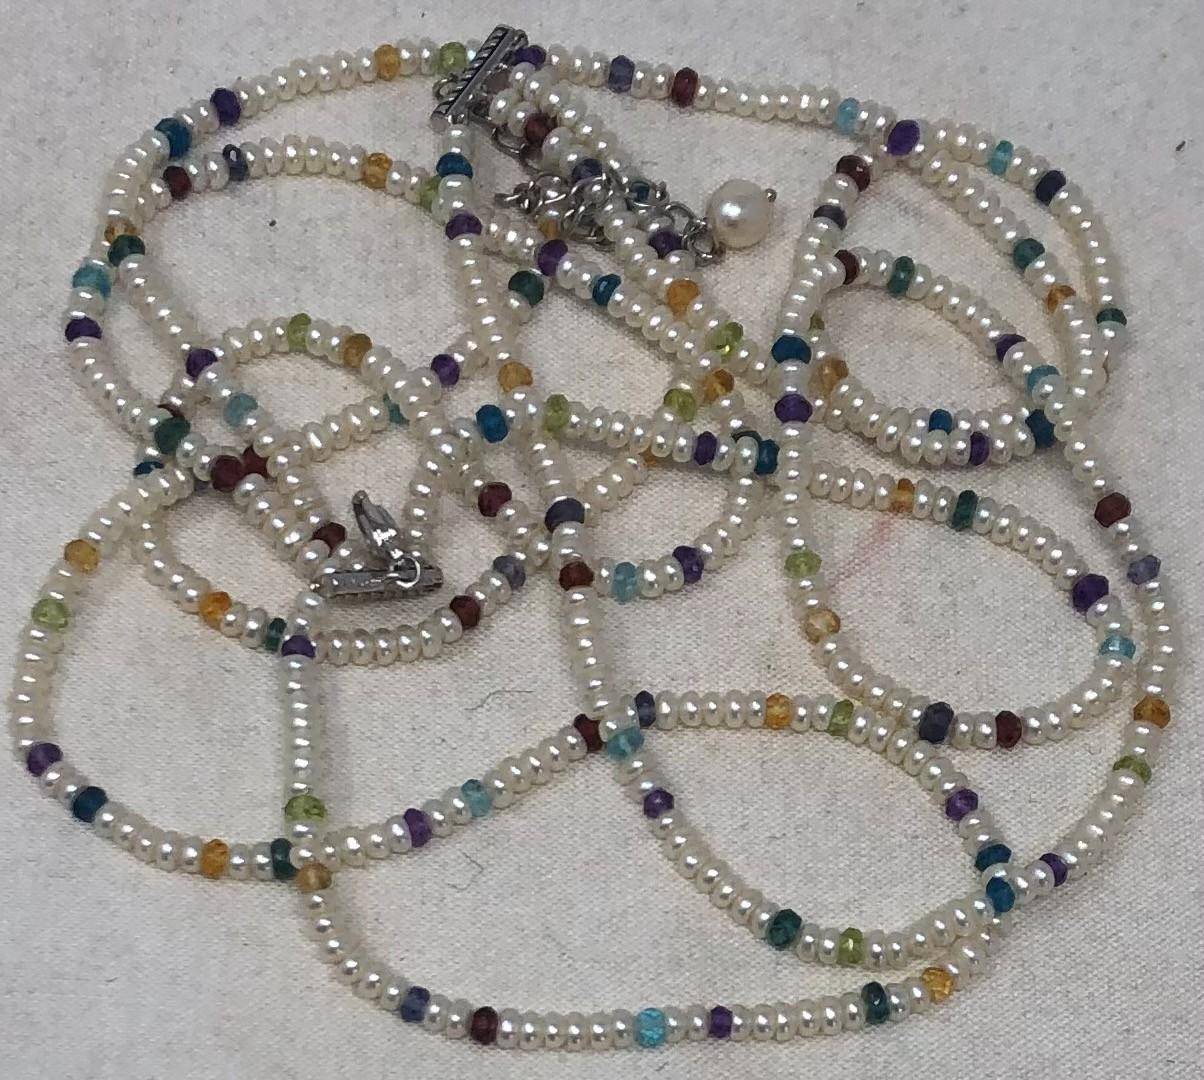 Four strand freshwater pearl necklace accented with emerald and garnet beads, length 15 inches.